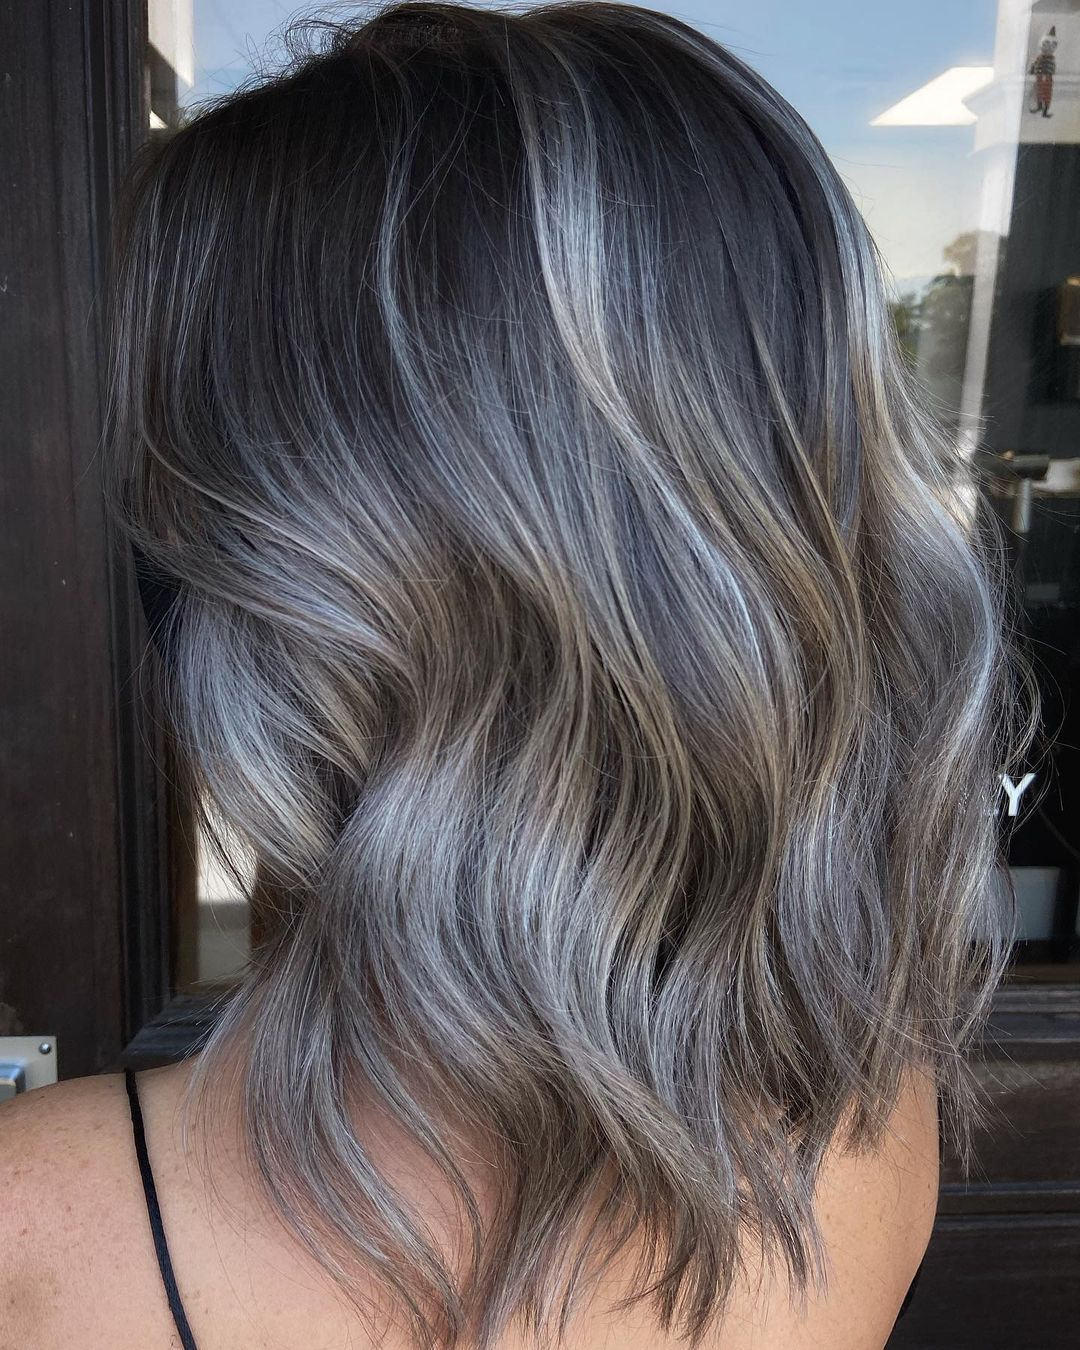 At Home Gray Balayage Maintenance